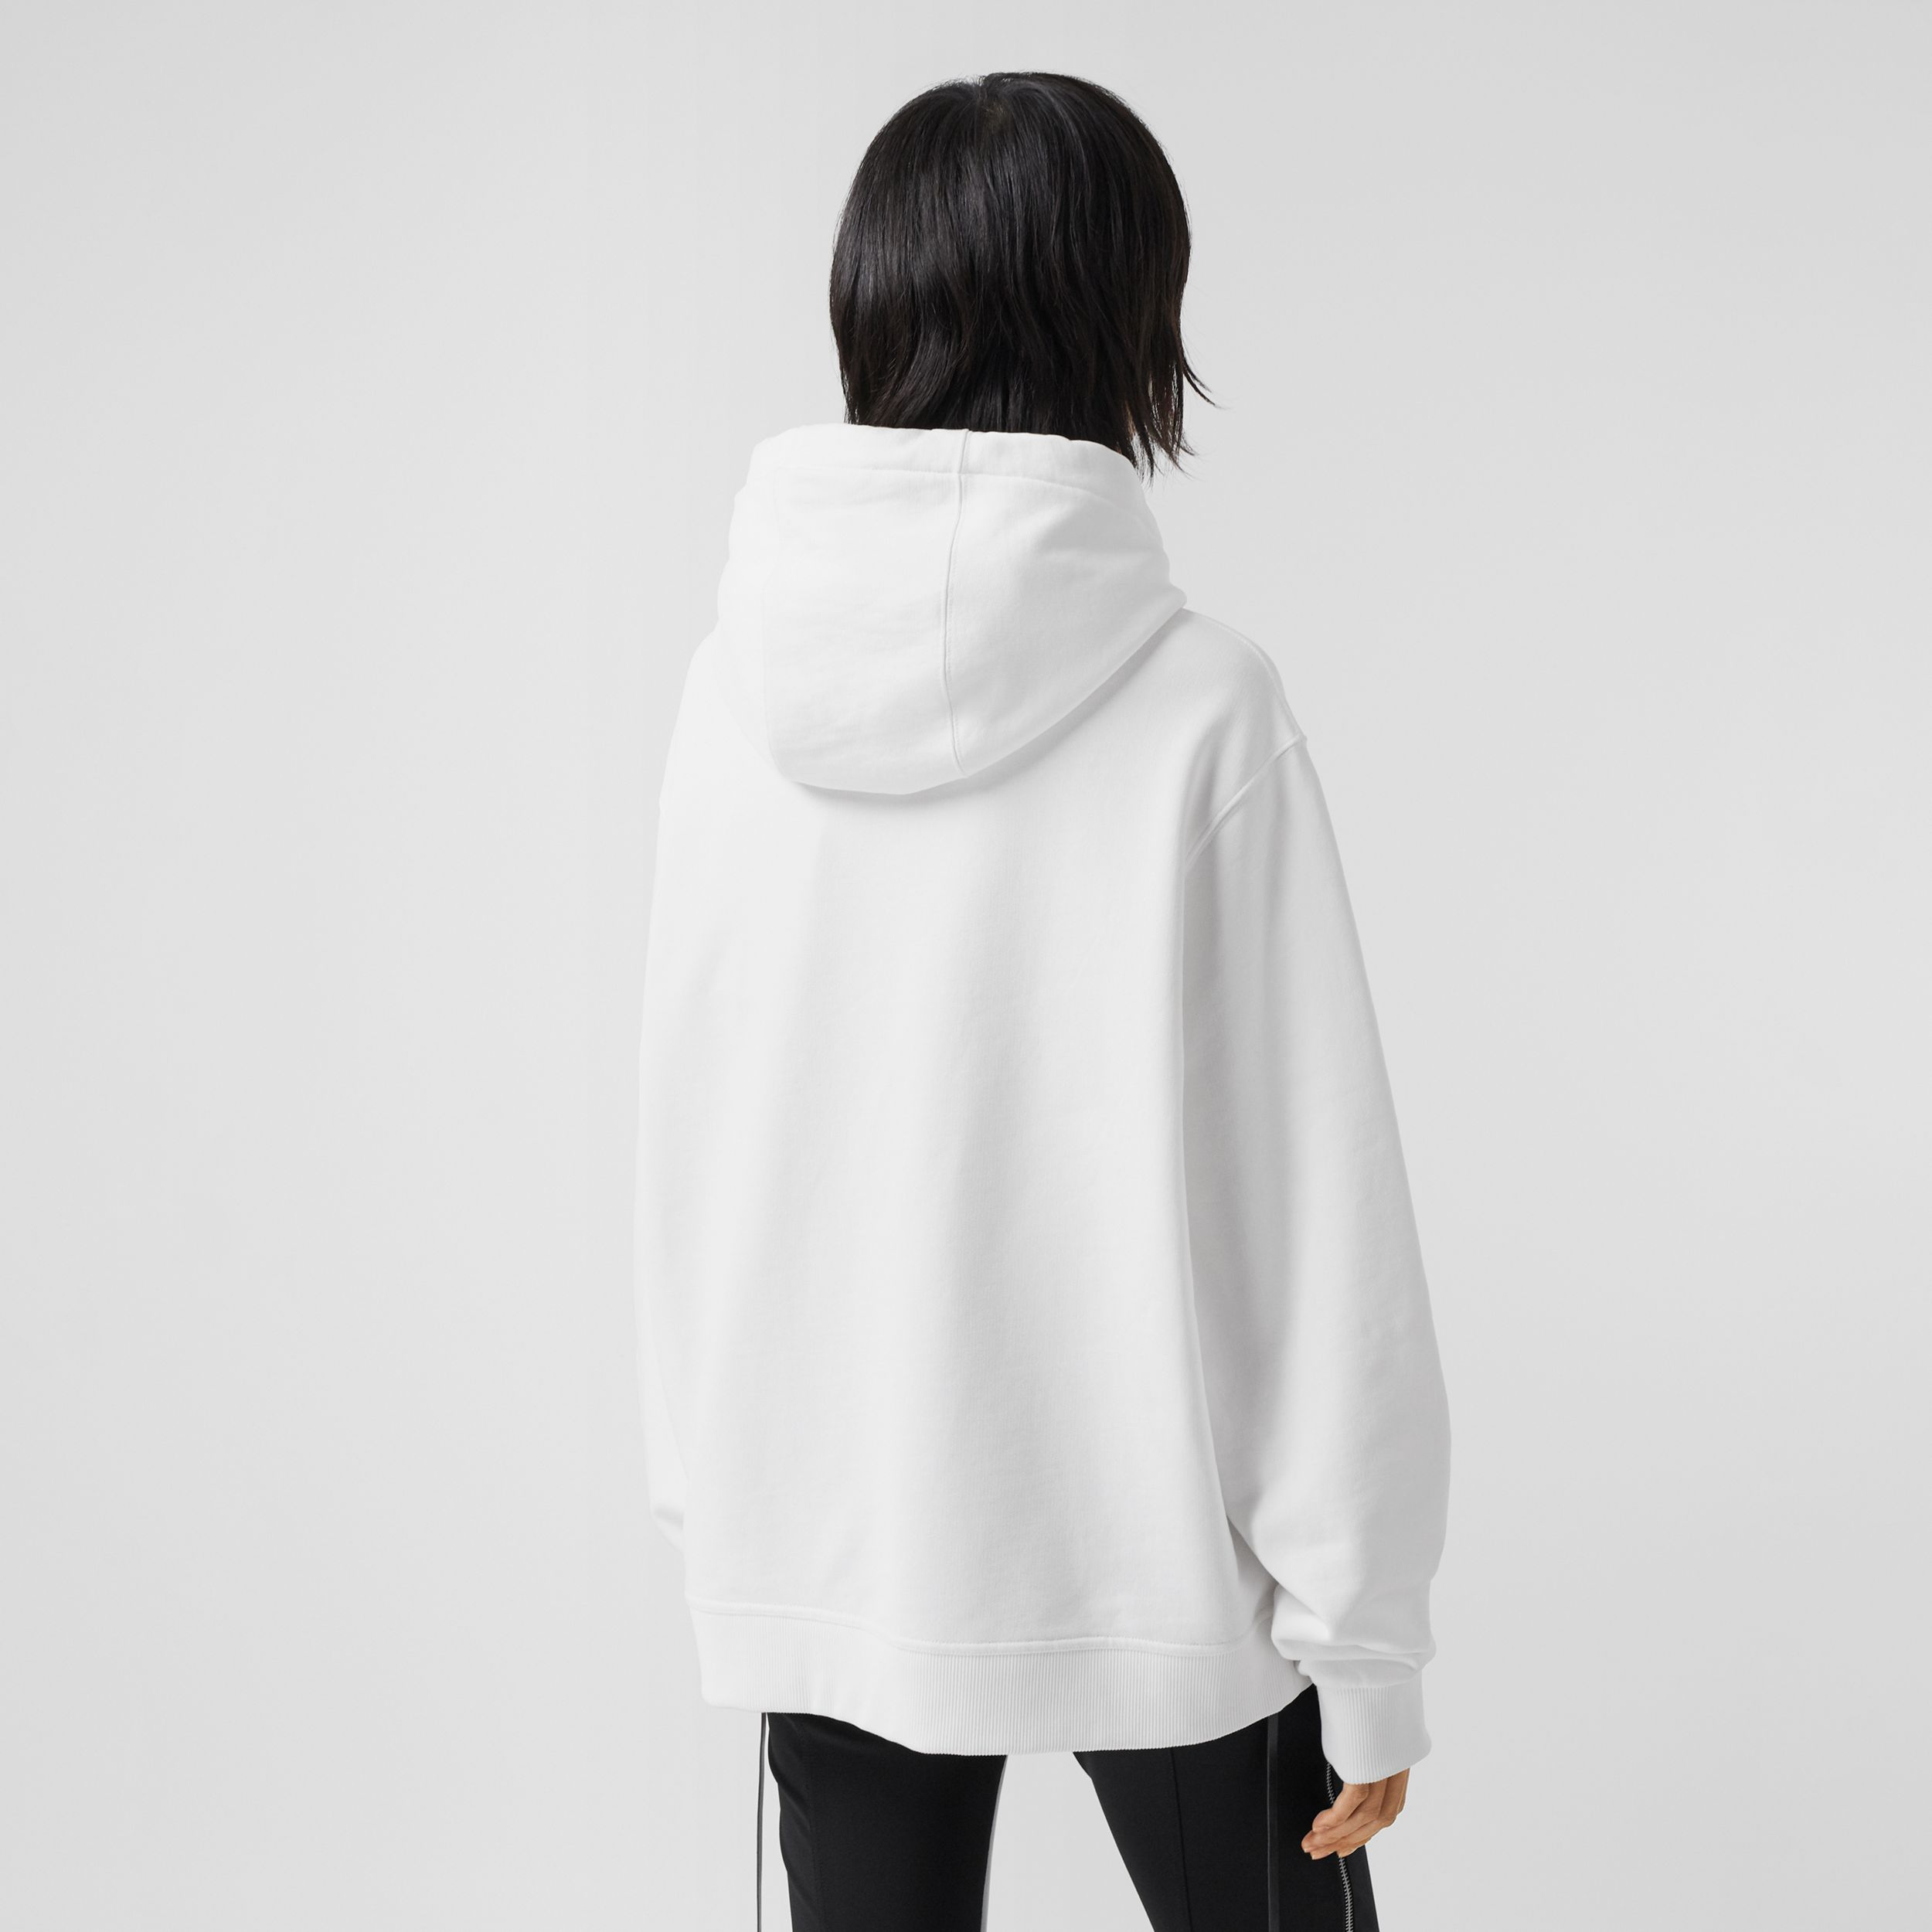 Montage Print Cotton Oversized Hoodie in White - Women | Burberry - 3